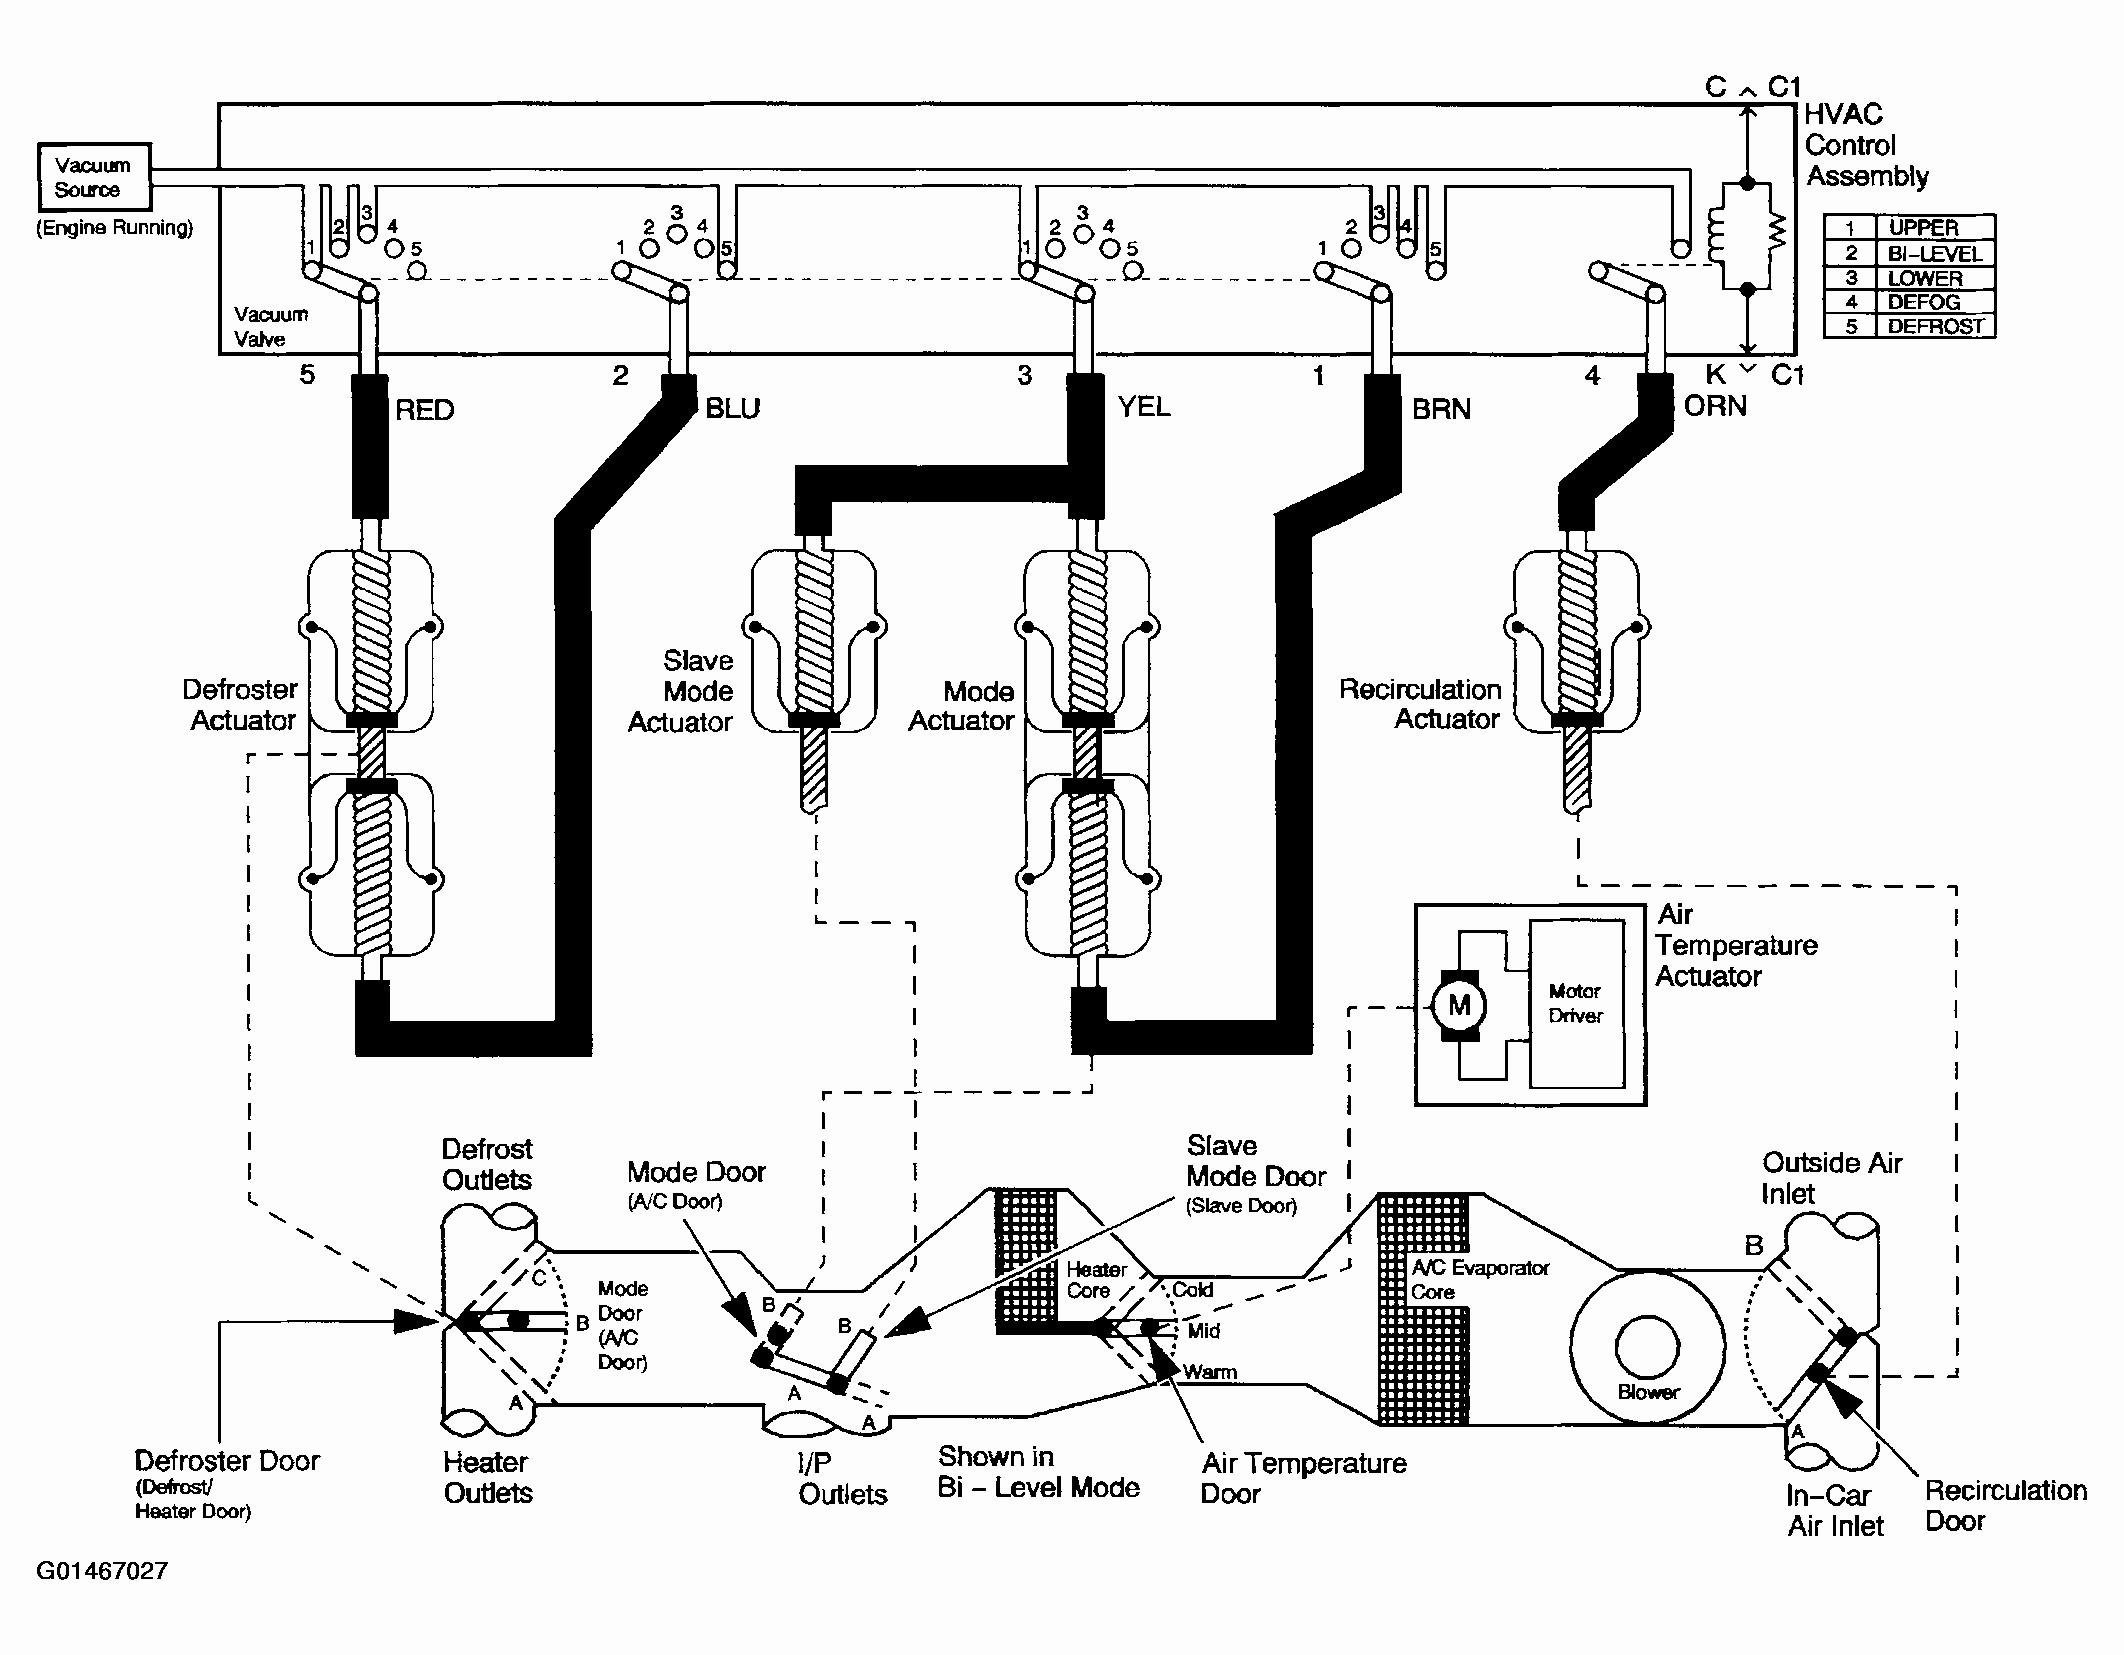 S10 4 Cylinder Engine Diagram - Wiring Diagrams Schema Basic Cylinder Engine Diagram on basic ignition wiring diagram, inline 2 cylinder engine diagram, basic internal combustion engine, basic car engine, 4 stroke engine diagram, basic diesel engine operation, 1995 6 cylinder engine diagram, basic diesel engine diagram, basic small engine diagram, stroke of the four cylinder engine diagram, 4 cycle engine diagram, basic engine parts, basic 4 stroke engine design, single cylinder engine diagram, basic motorcycle wiring diagram, basic gas engine diagram, 2 cylinder 4 piston motor diagram, motorcycle basic engine diagram, working engine cylinder diagram, basic car diagram,